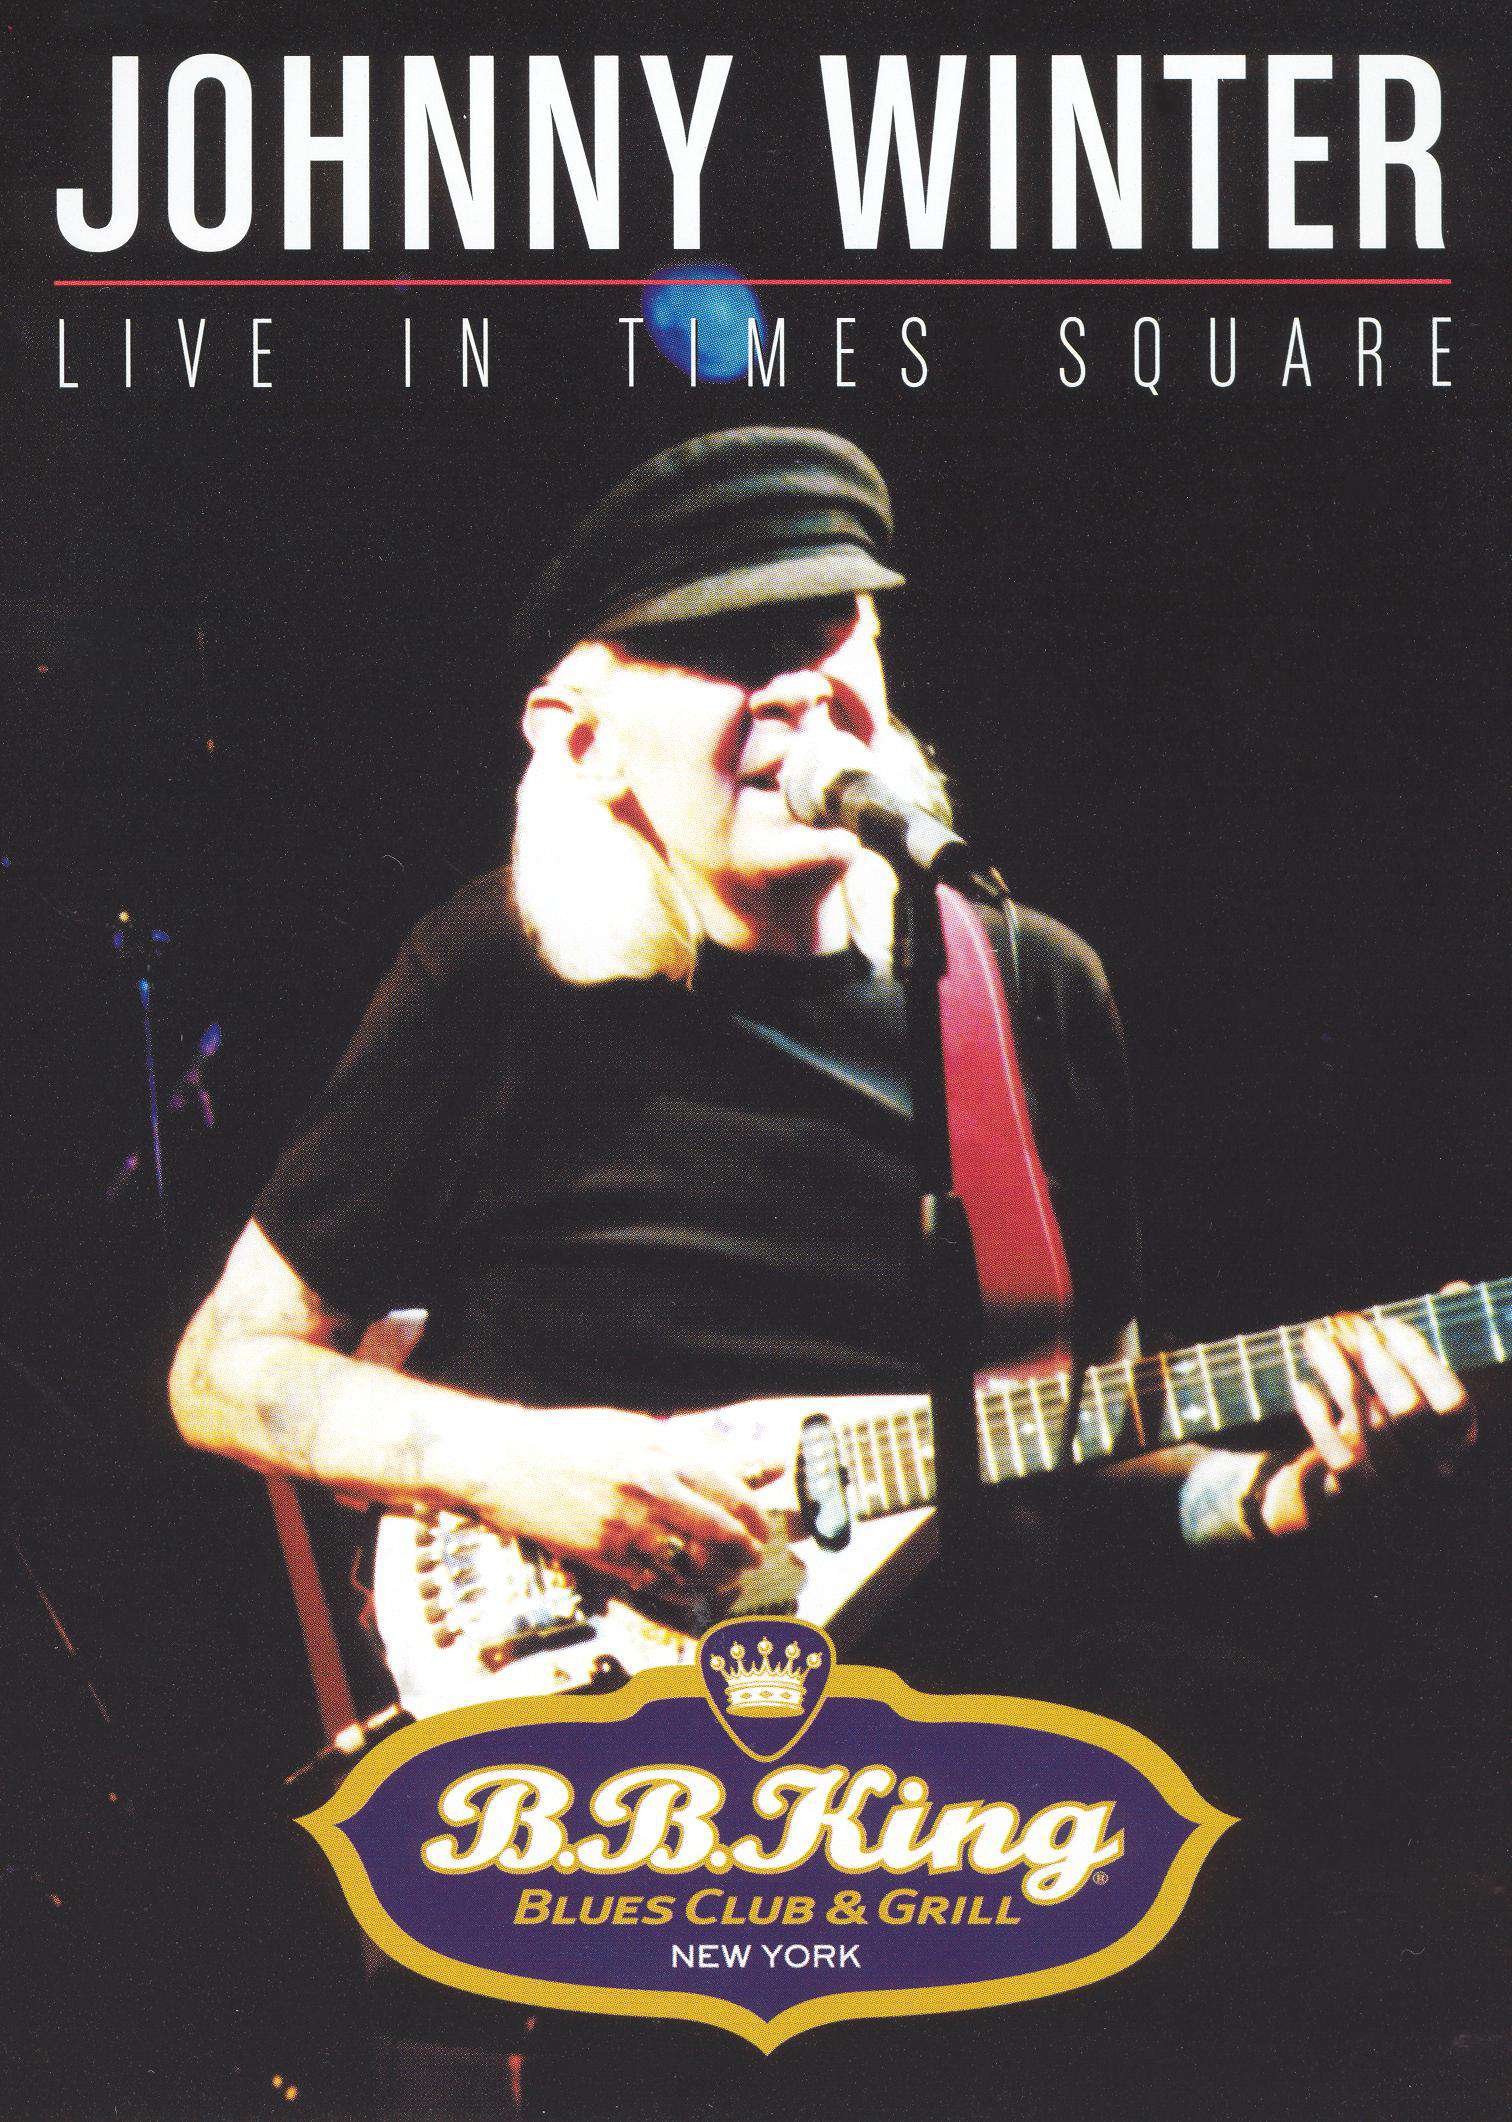 Johnny Winter: Live in Times Square